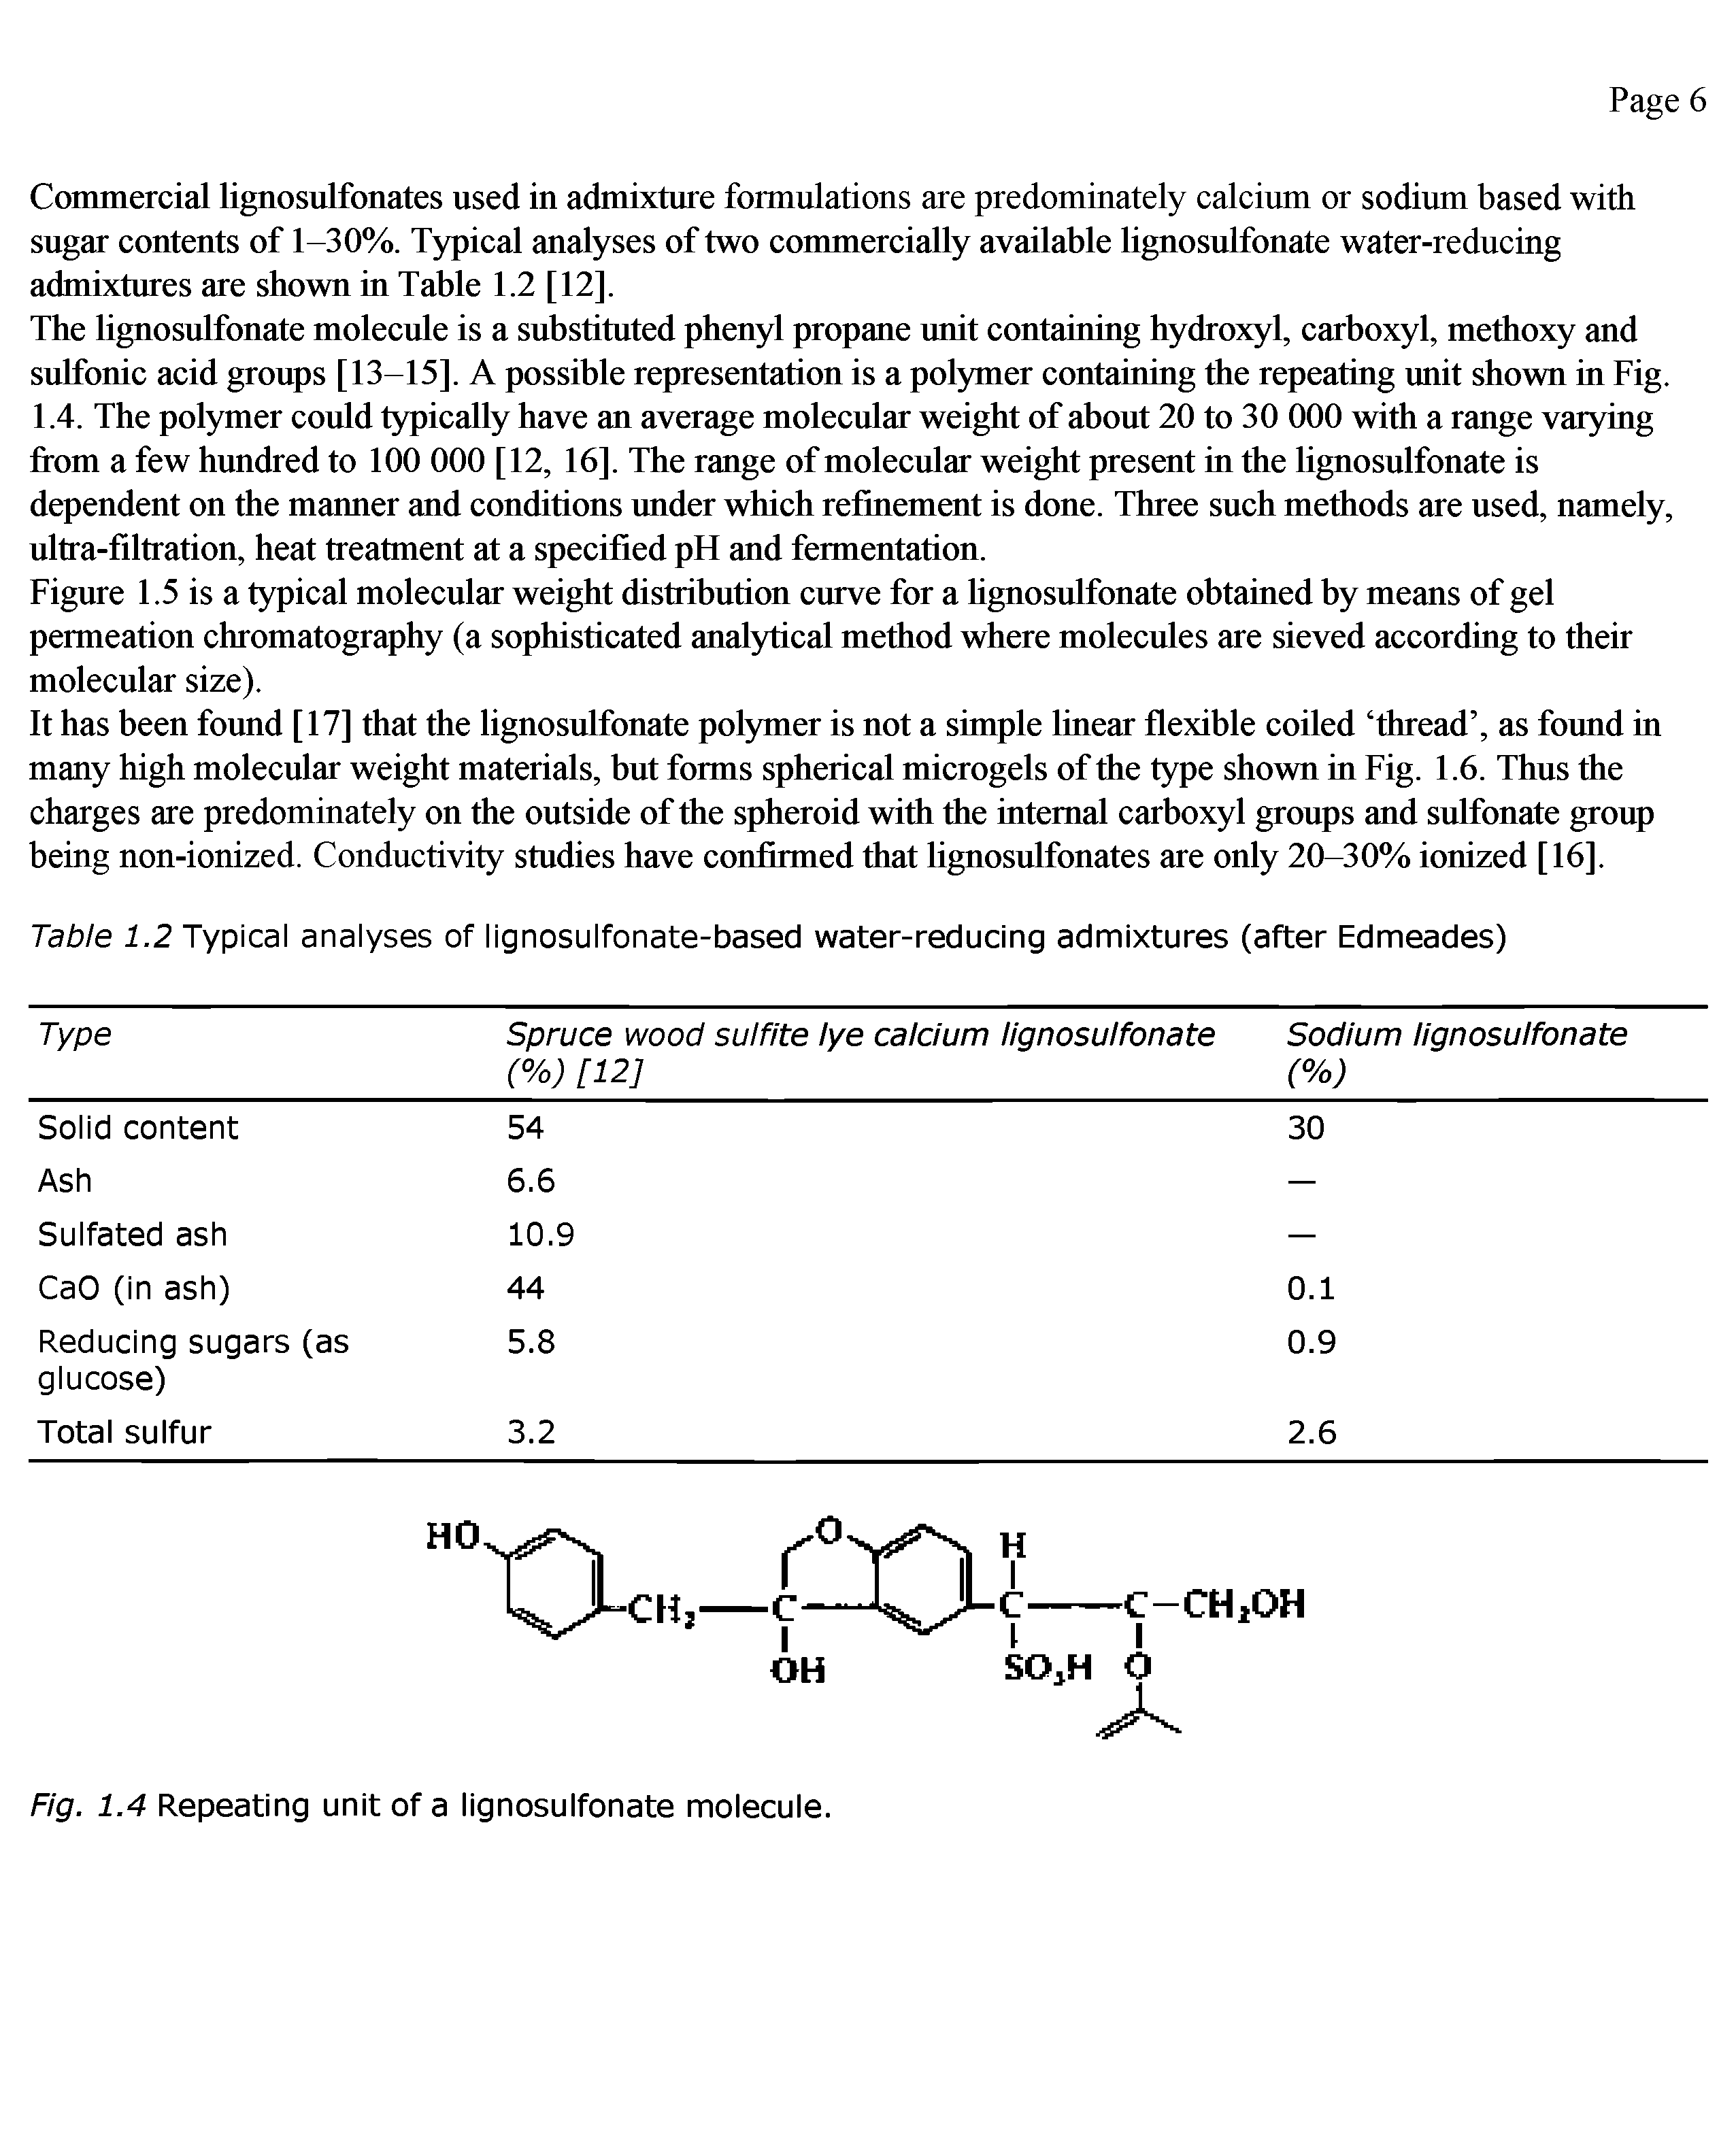 "Table 1.2 <a href=""/info/typical_analyses"">Typical analyses</a> of lignosulfonate-based water-reducing admixtures (after Edmeades)"